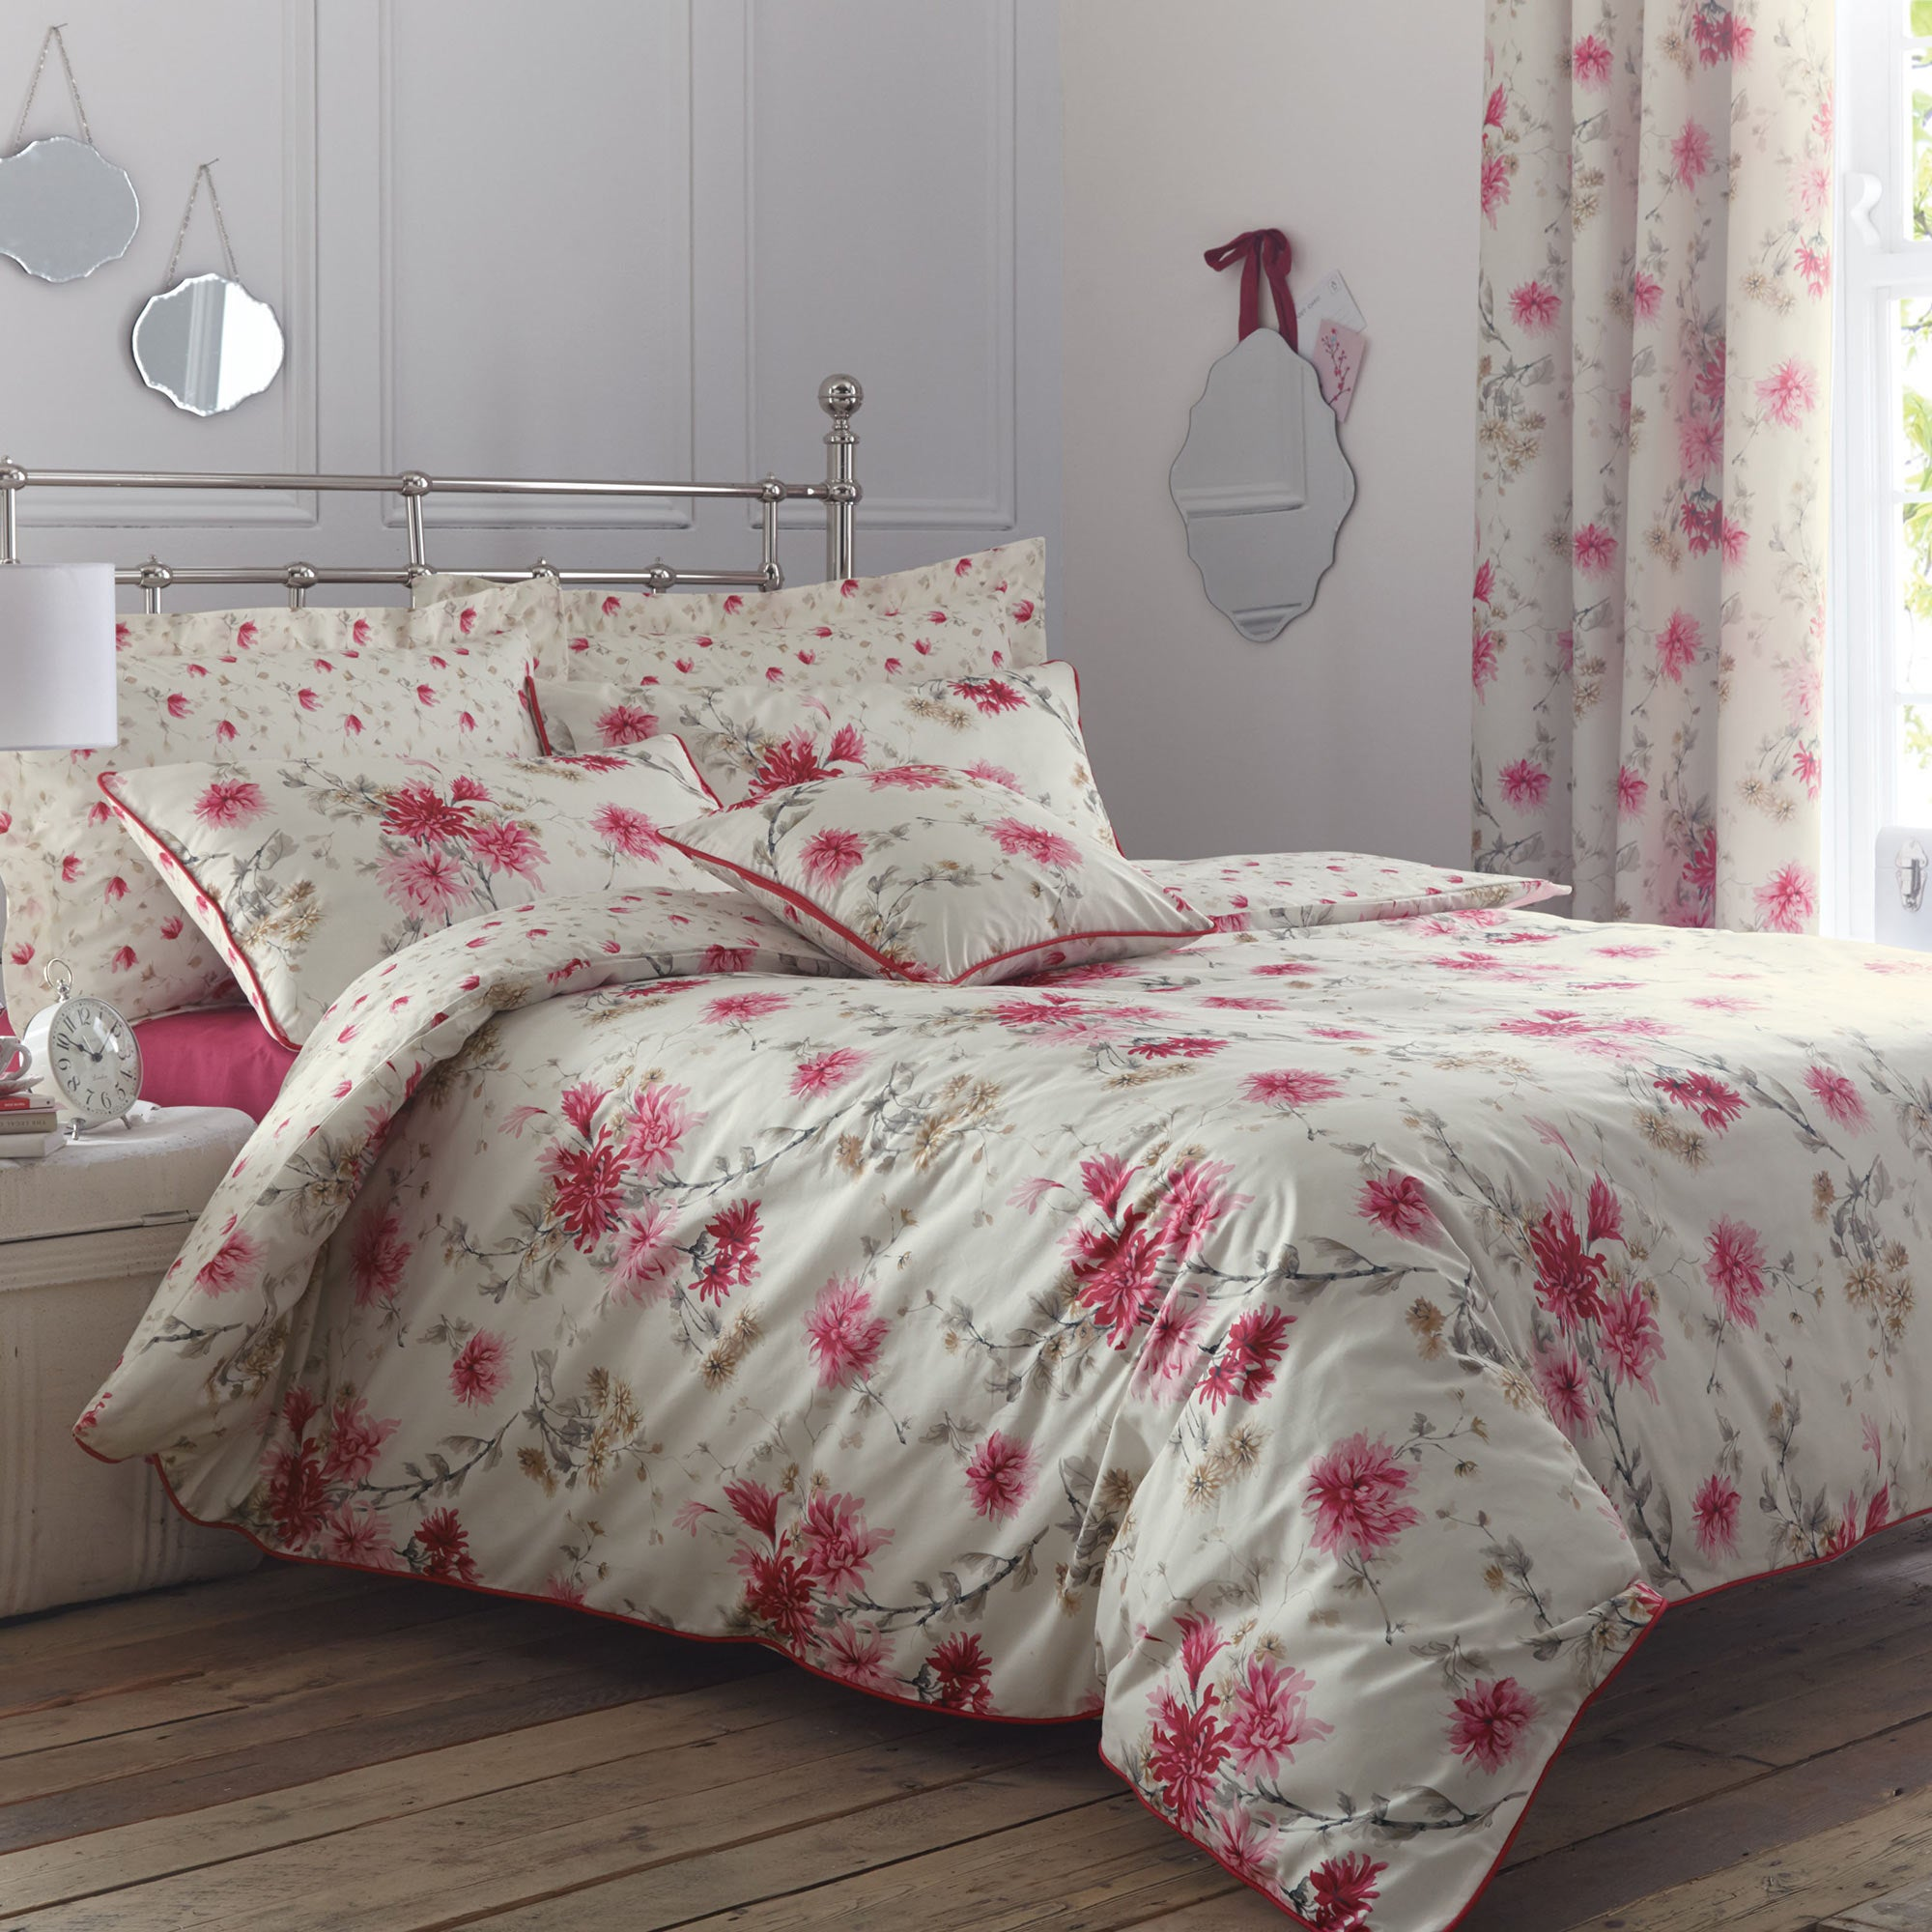 Image of Analise Pink Duvet Cover and Pillowcase Set Pink